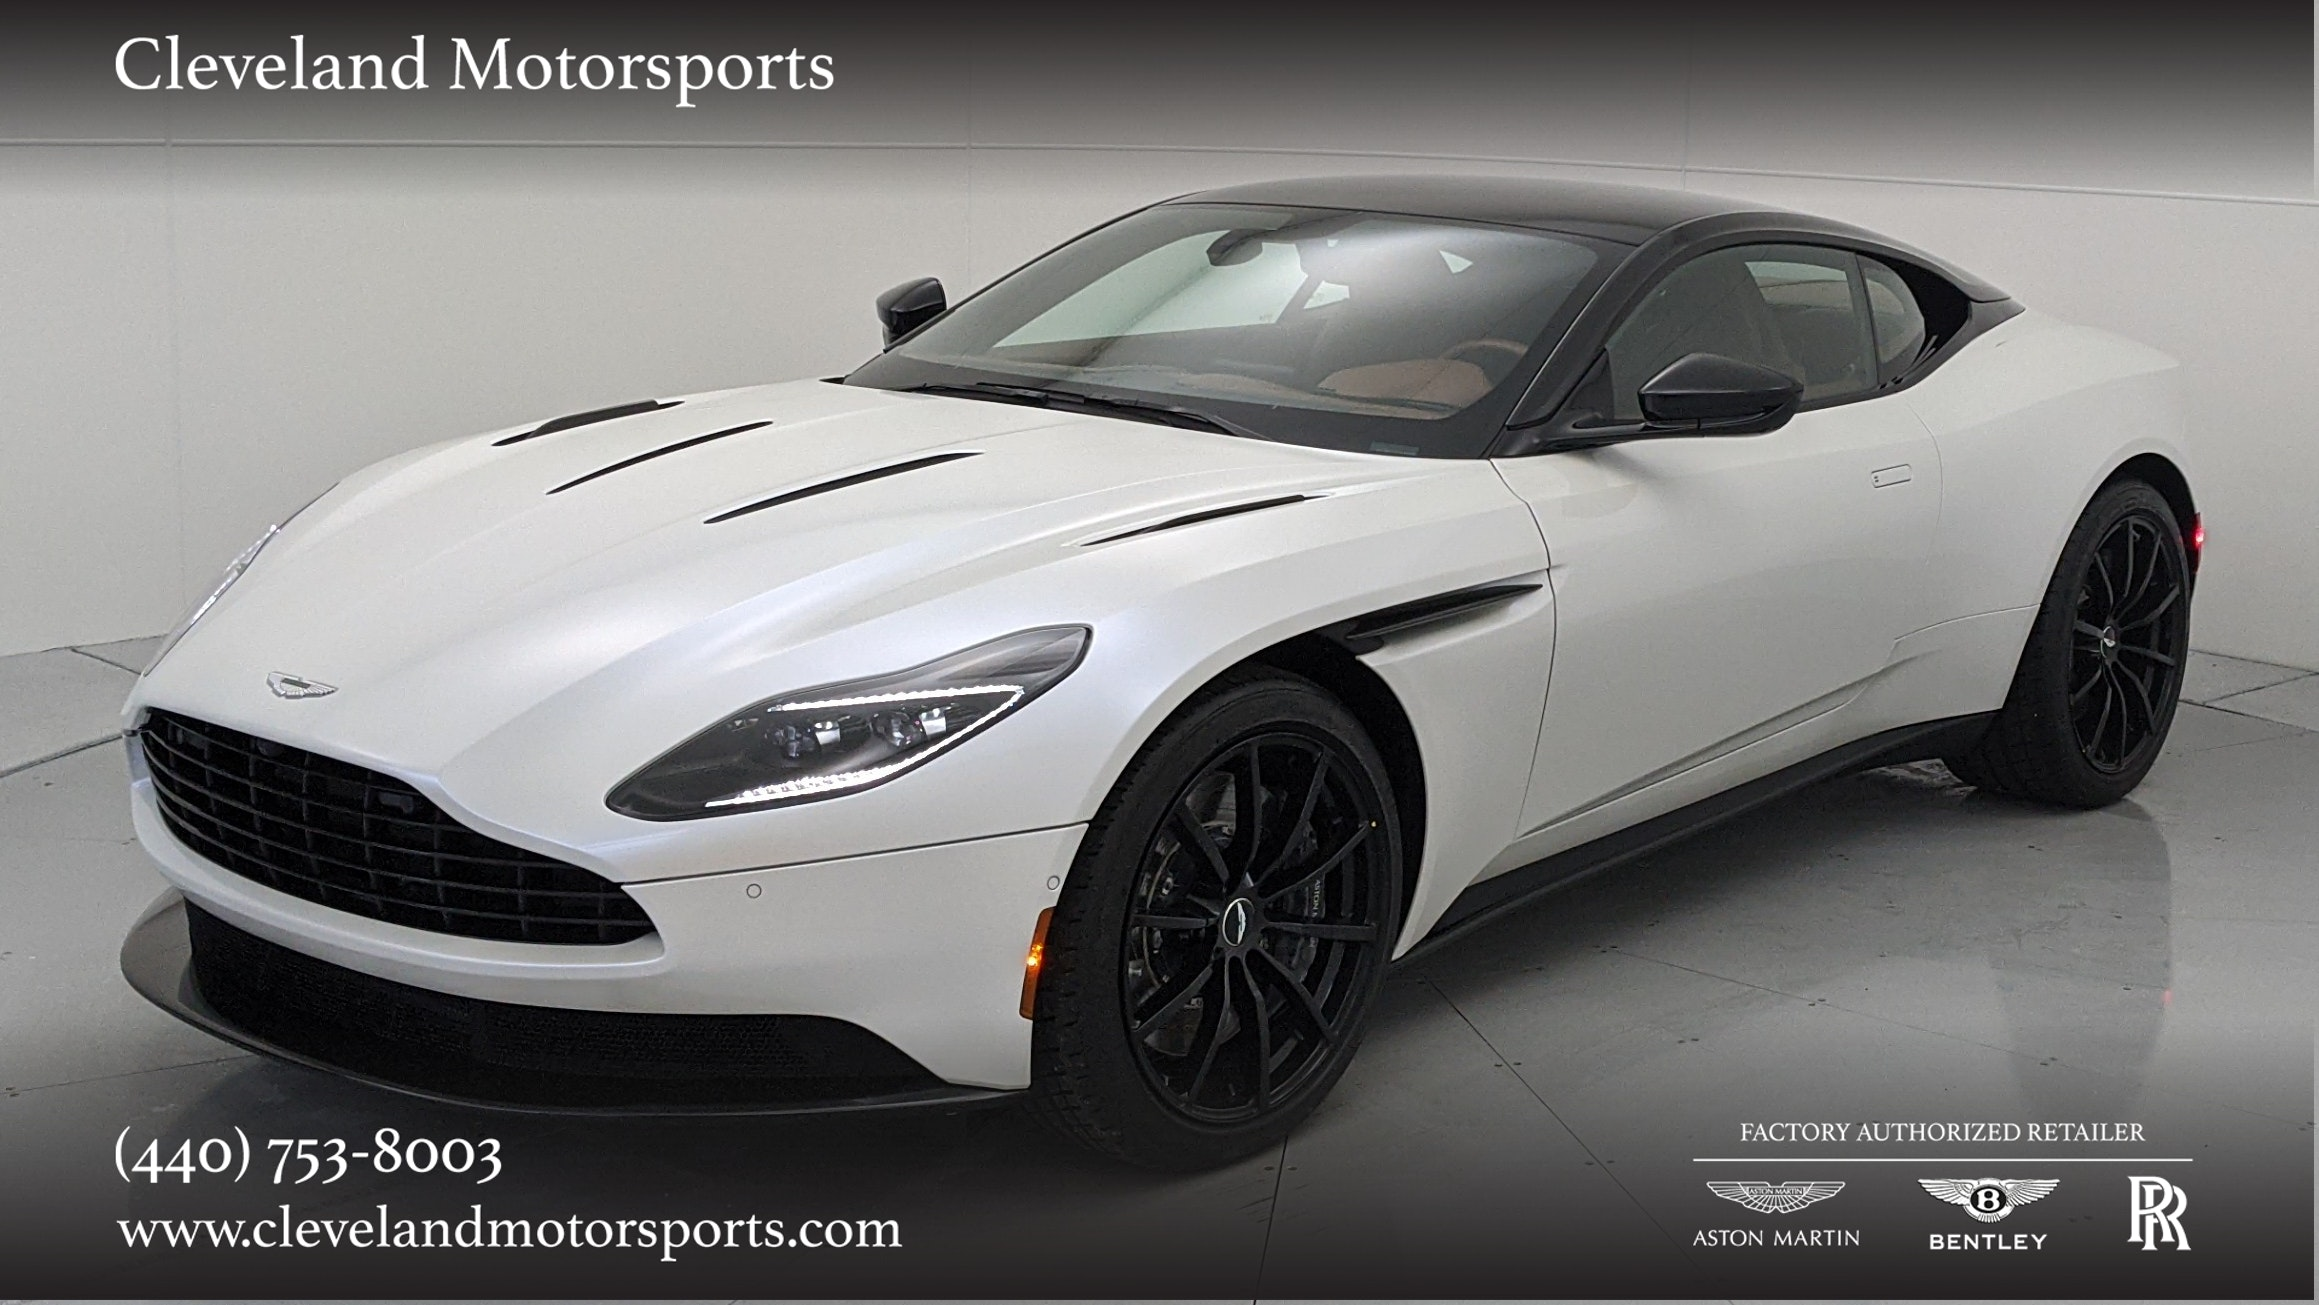 New Aston Martin For Sale In North Olmsted Cleveland Motorsports